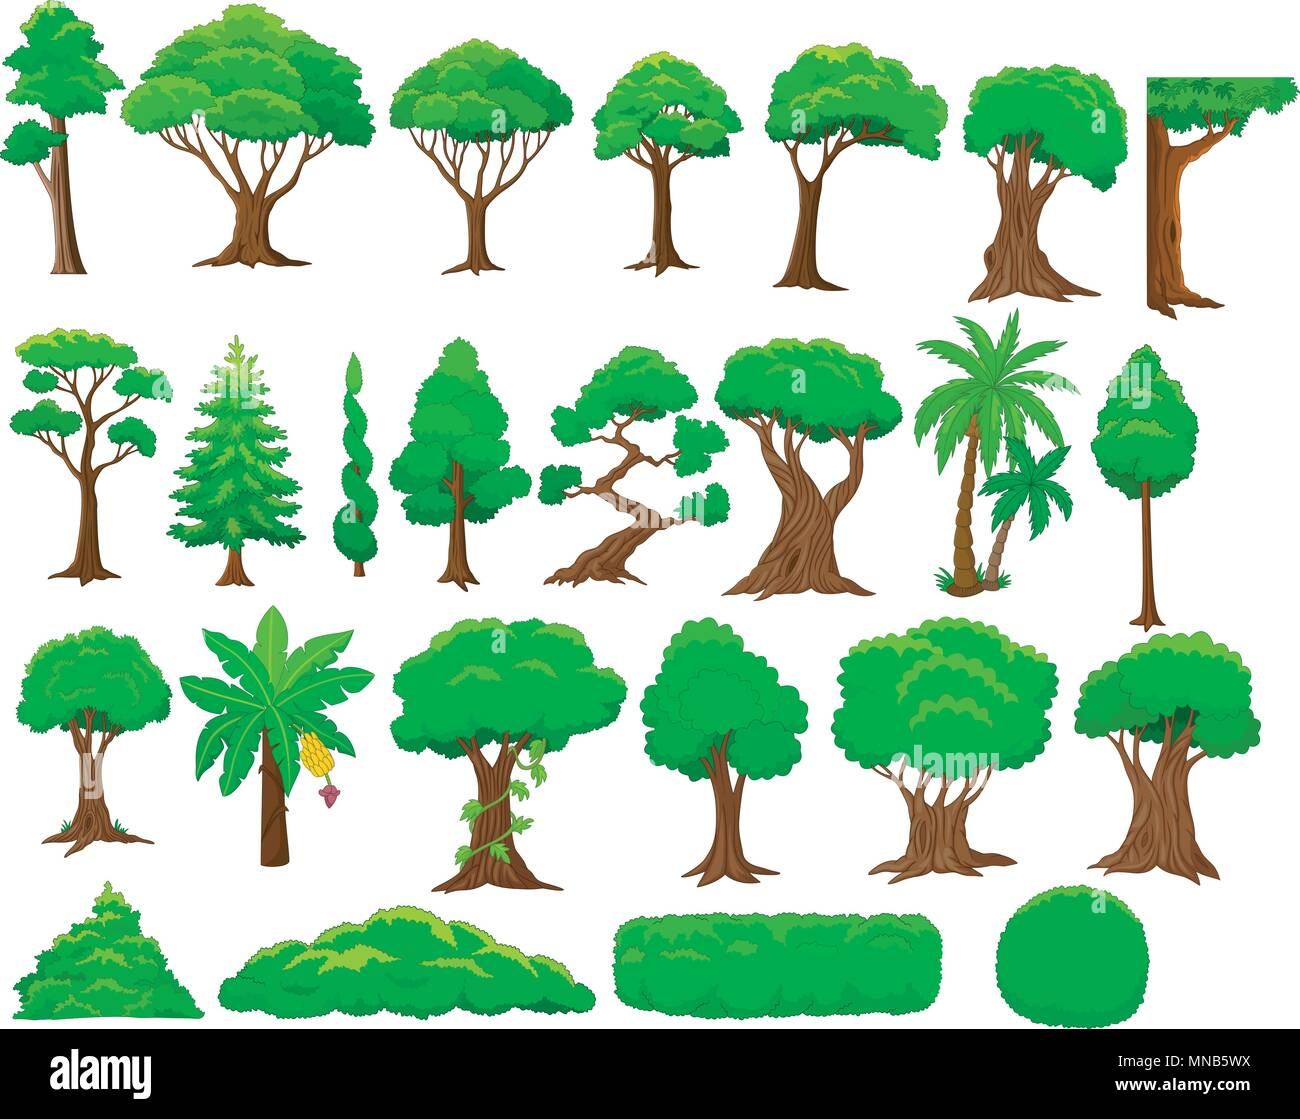 Cartoon Trees High Resolution Stock Photography And Images Alamy Download 85,810 cartoon tree free vectors. https www alamy com set of cartoon trees and bushes image185257574 html